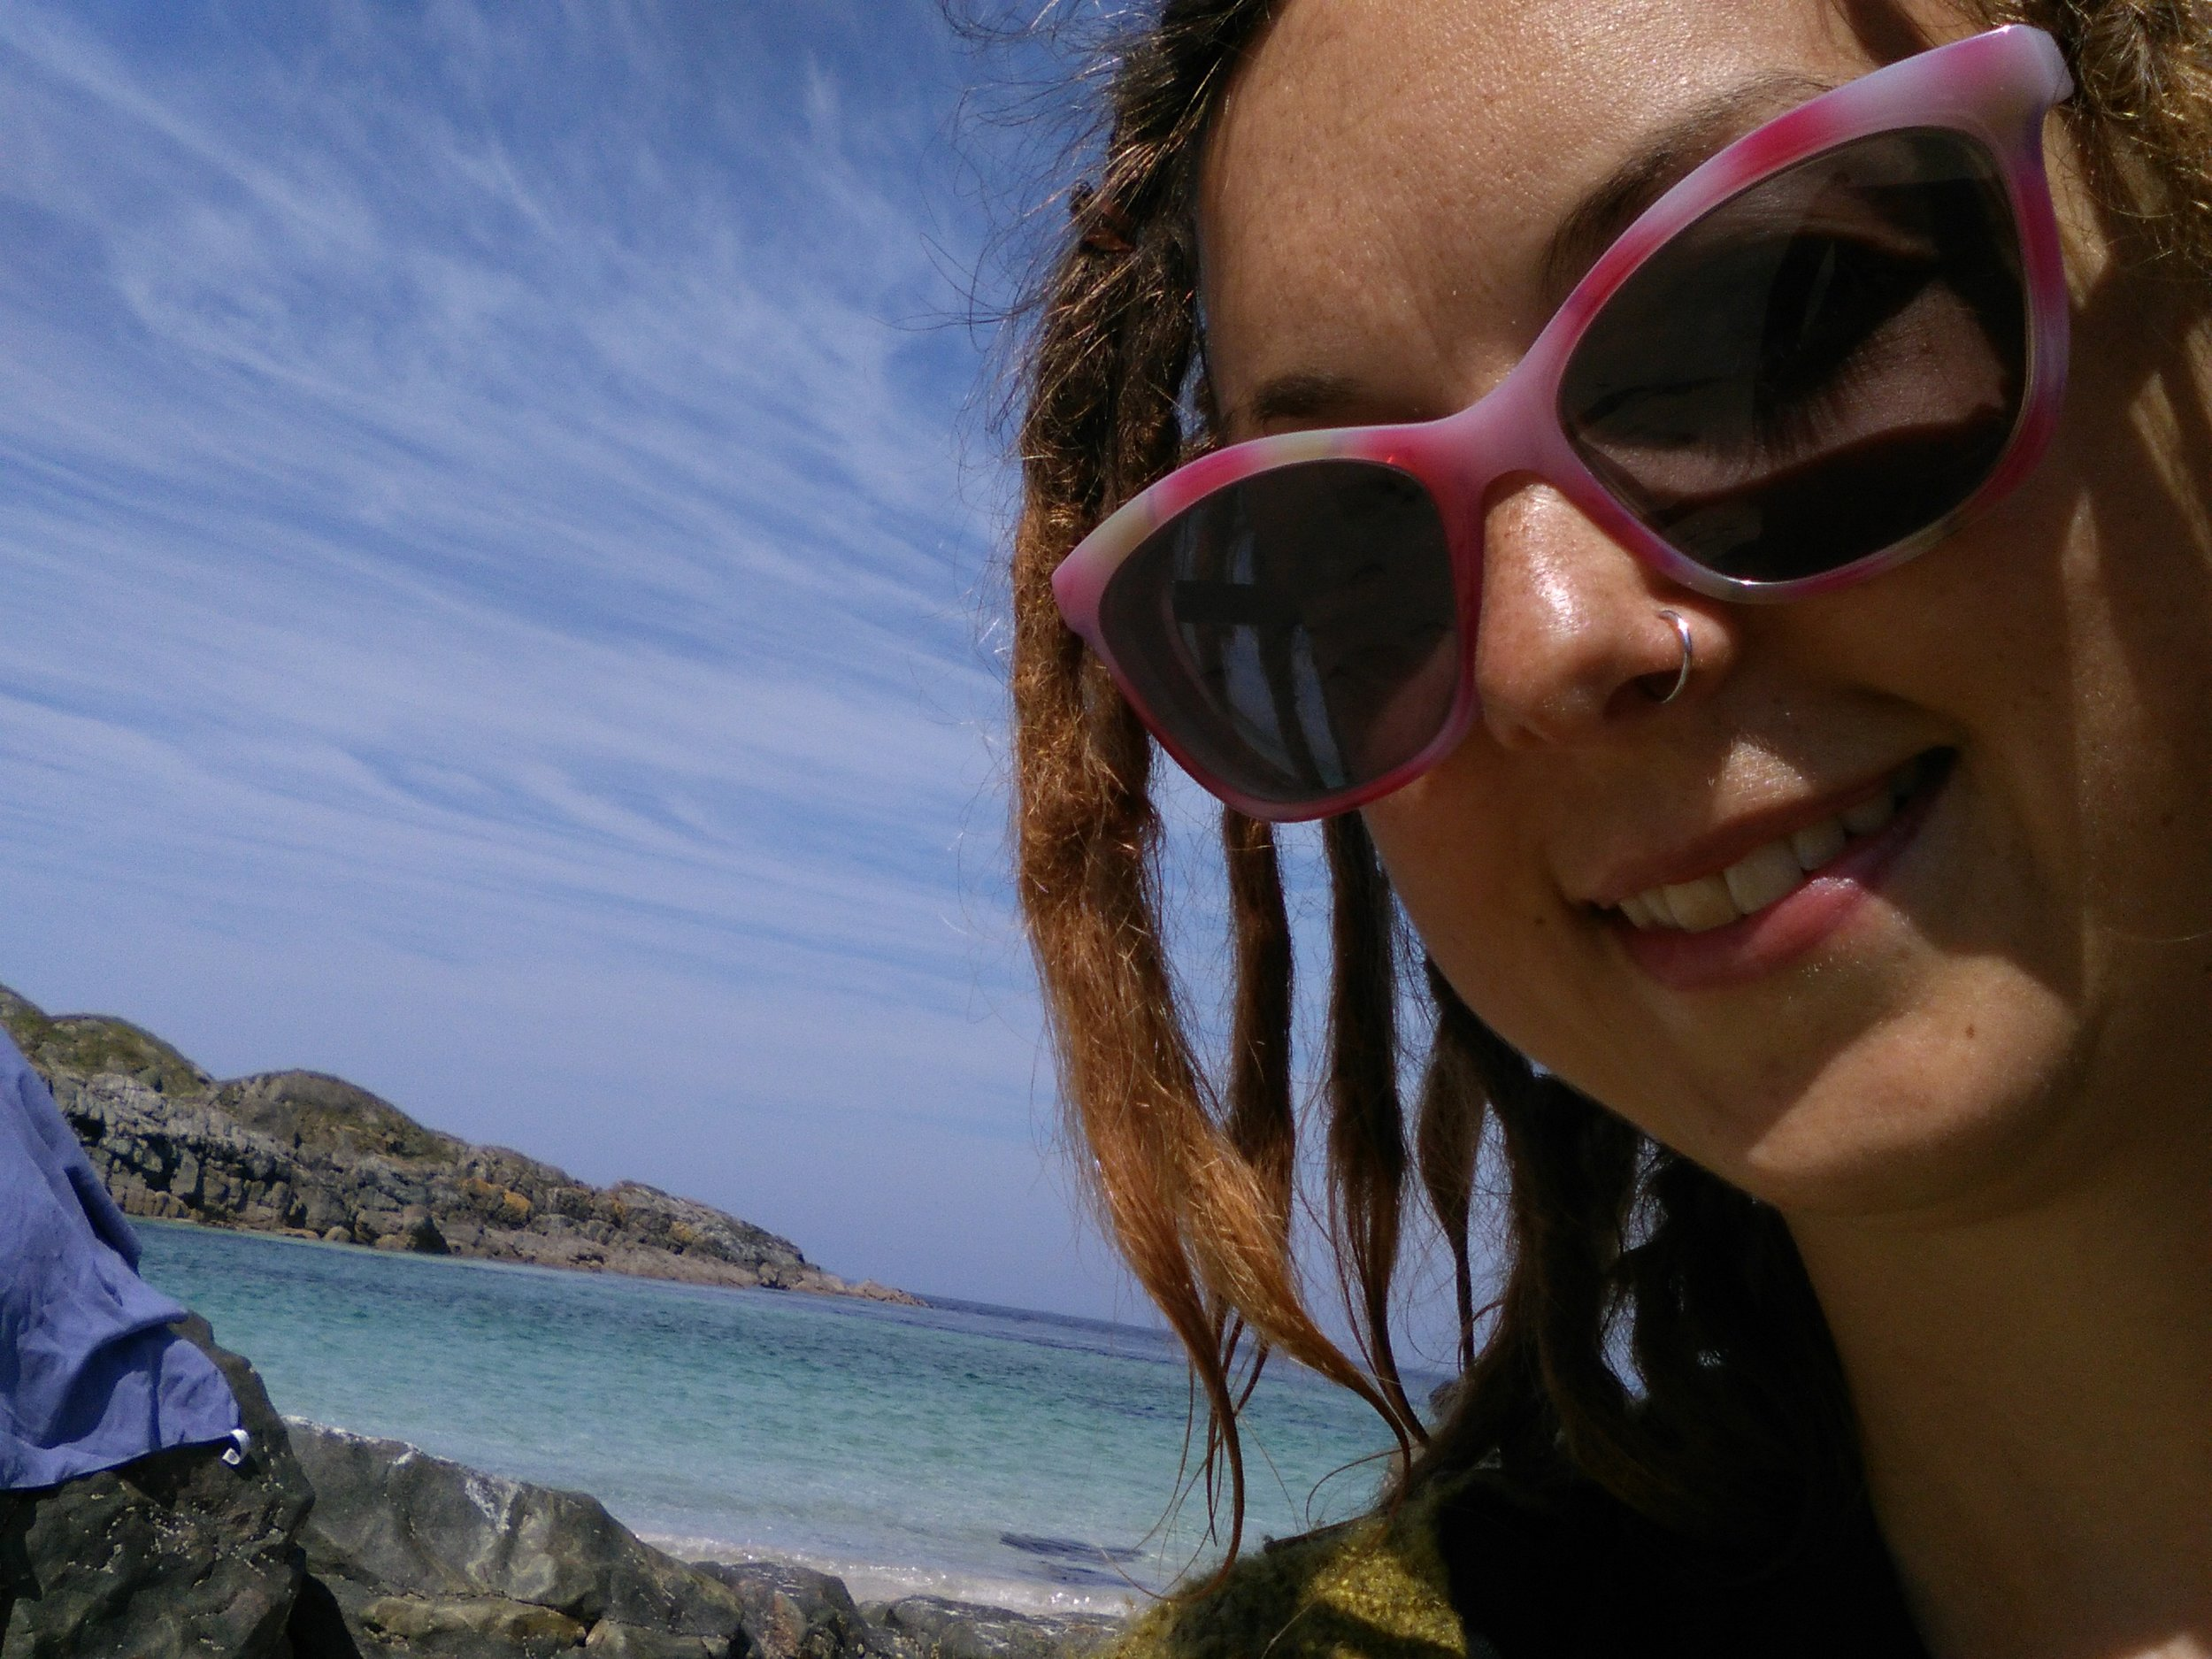 Jenny loving the sun after a swim on Iona!